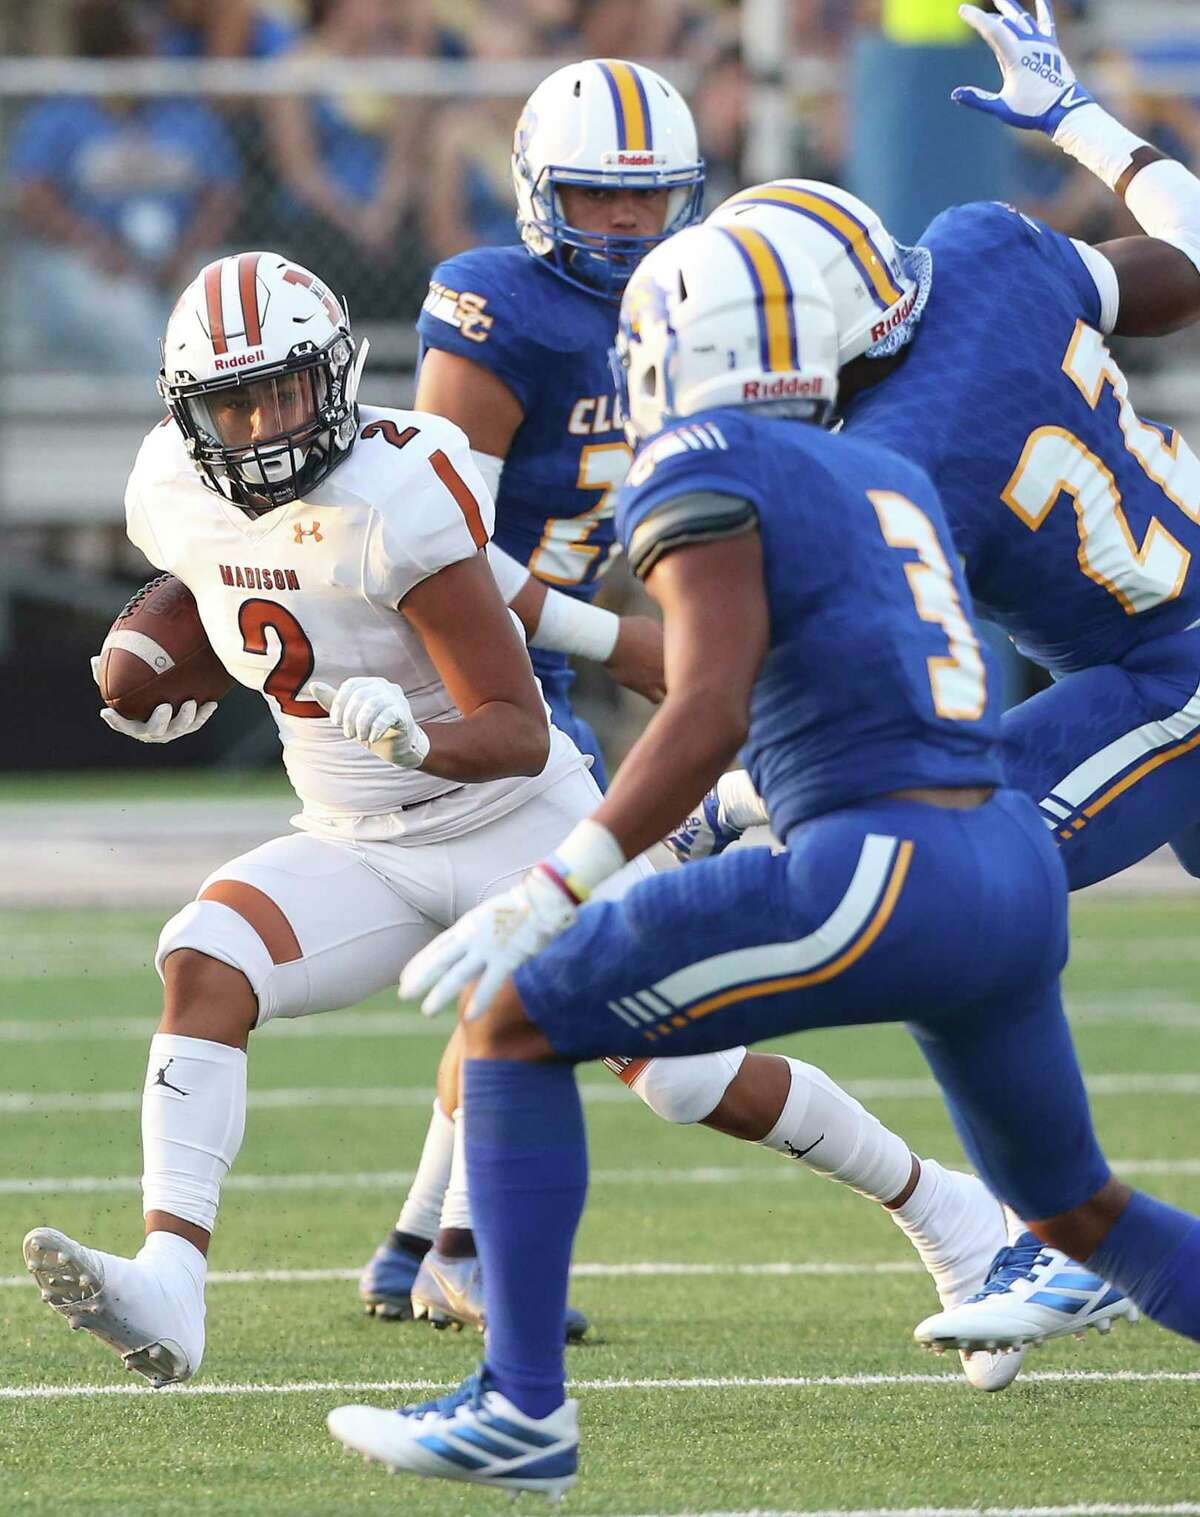 Maverick's halfback Darien Gill tries to slip away from Buffalo pursuers in the first quarter as Clemens hosts Madison at Lehnhoff Stadium on August 30, 2019.